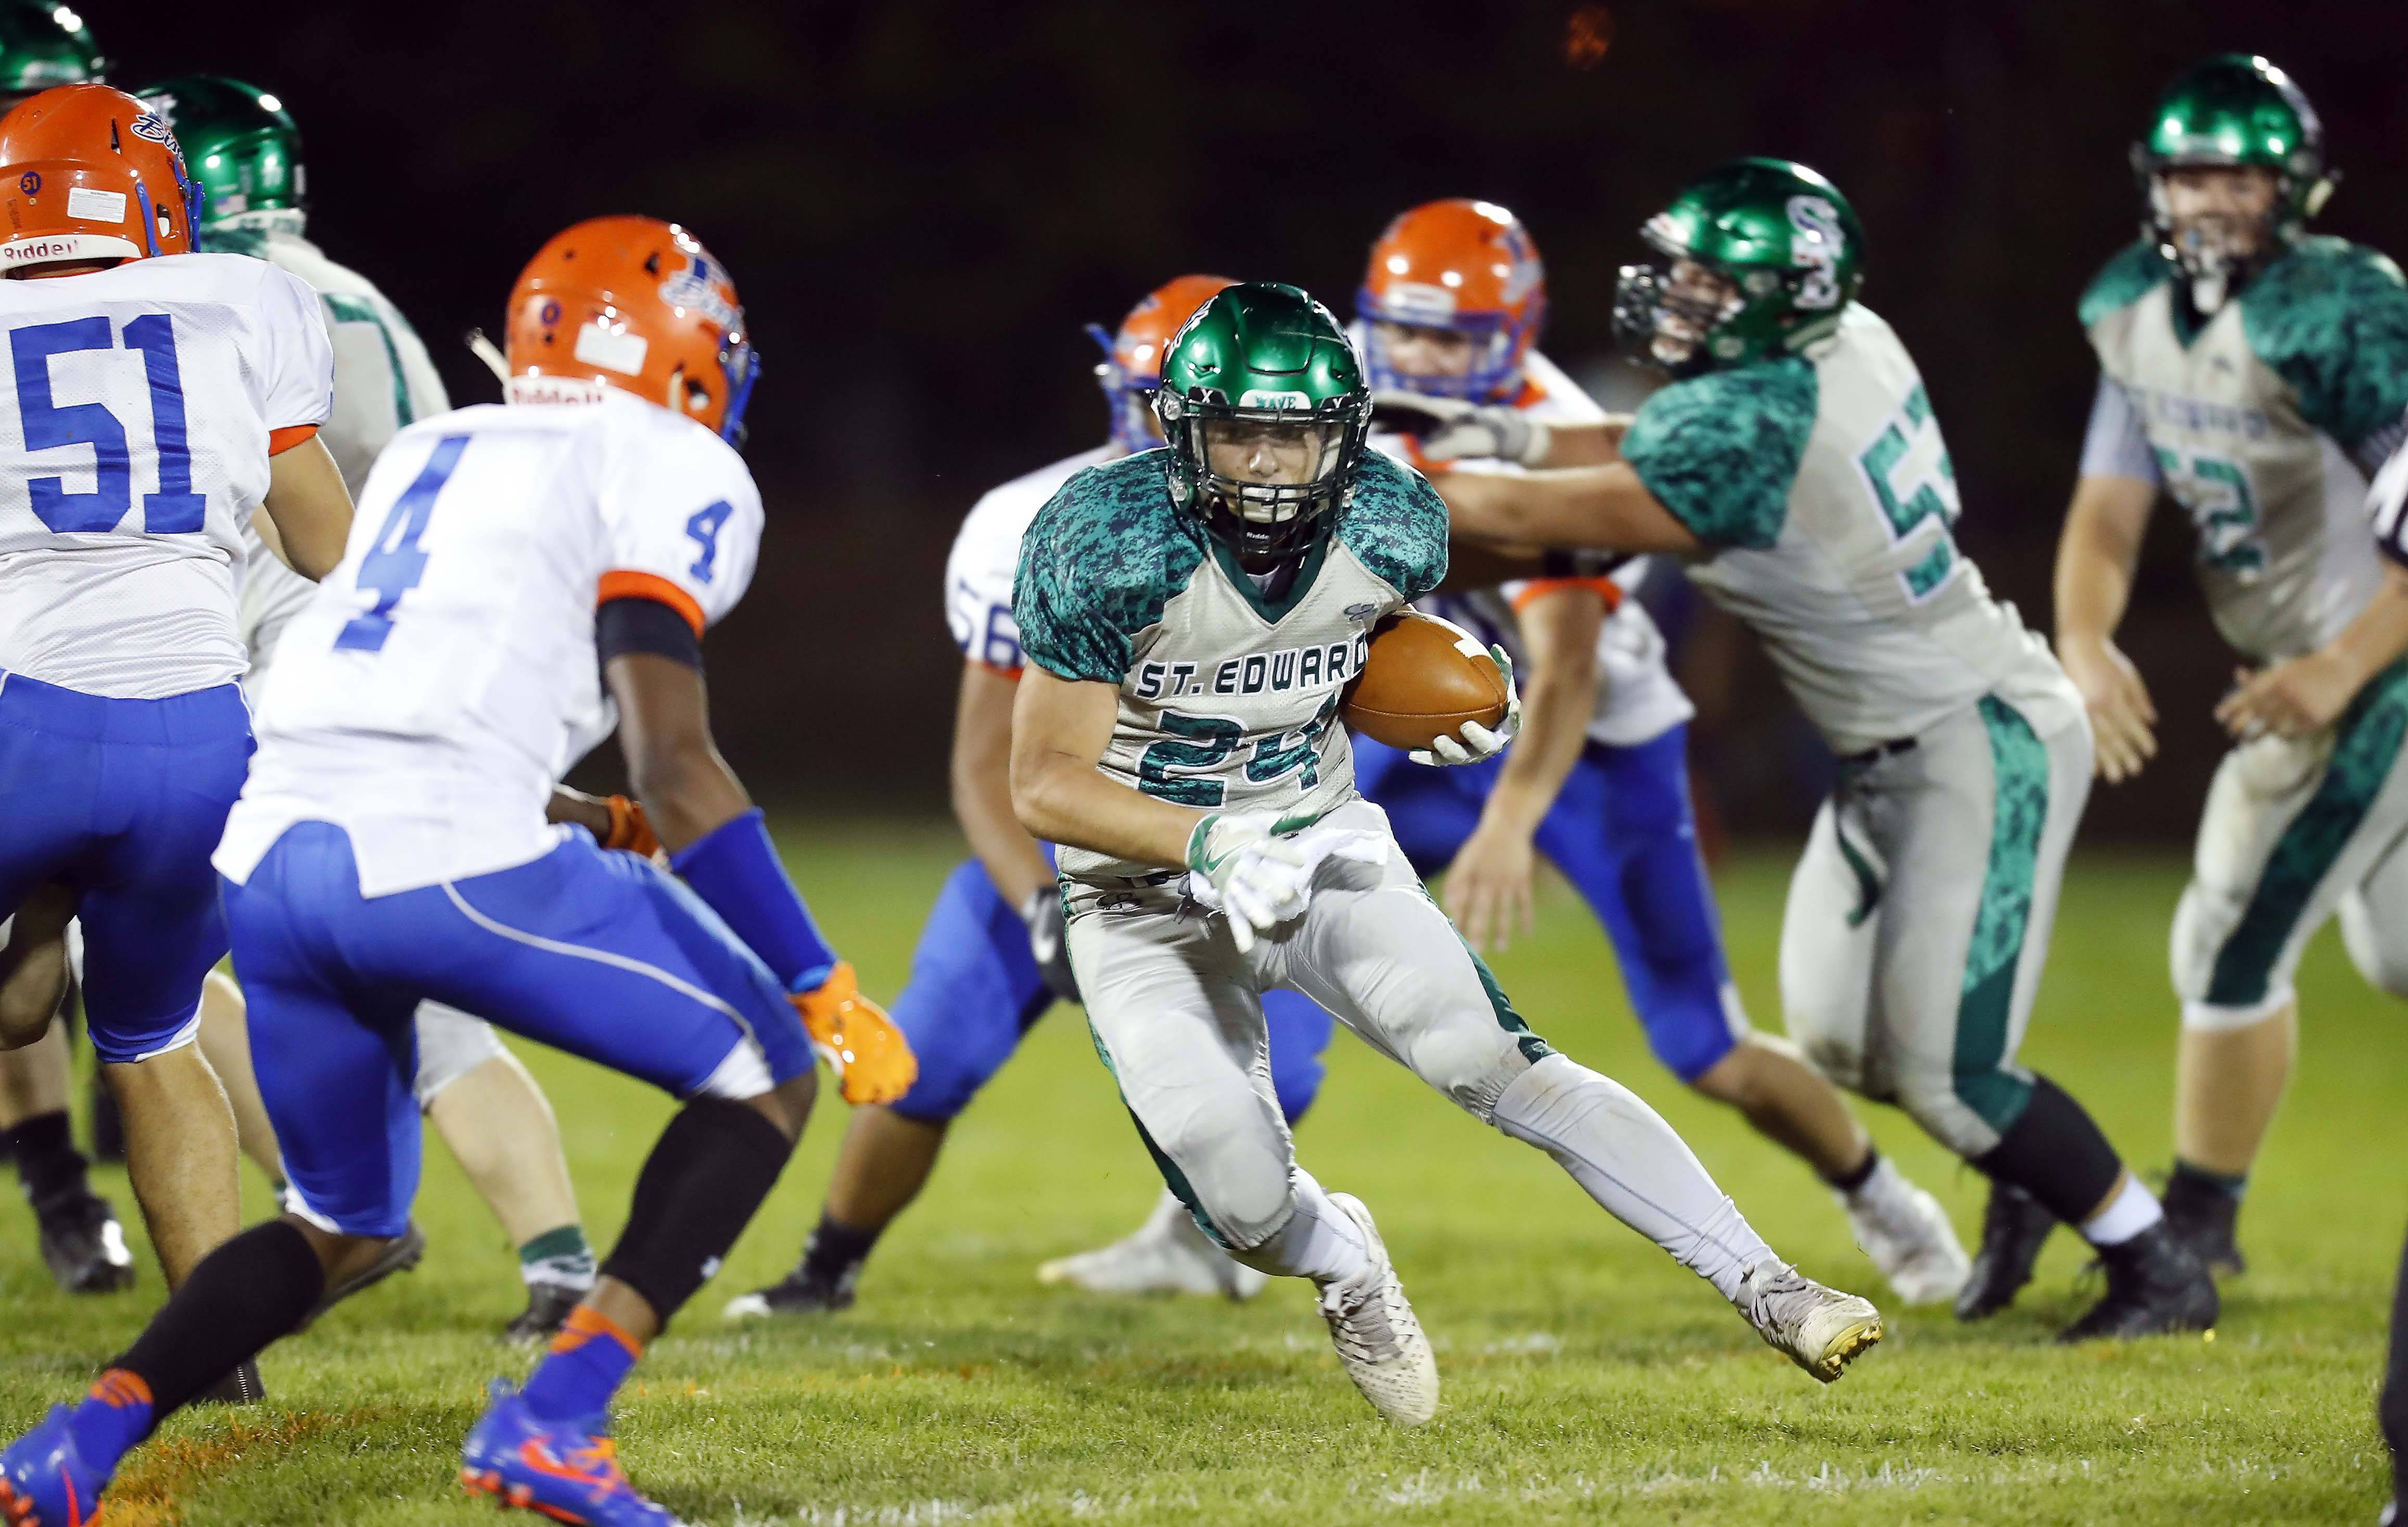 Images: St. Edward vs. Fenton football